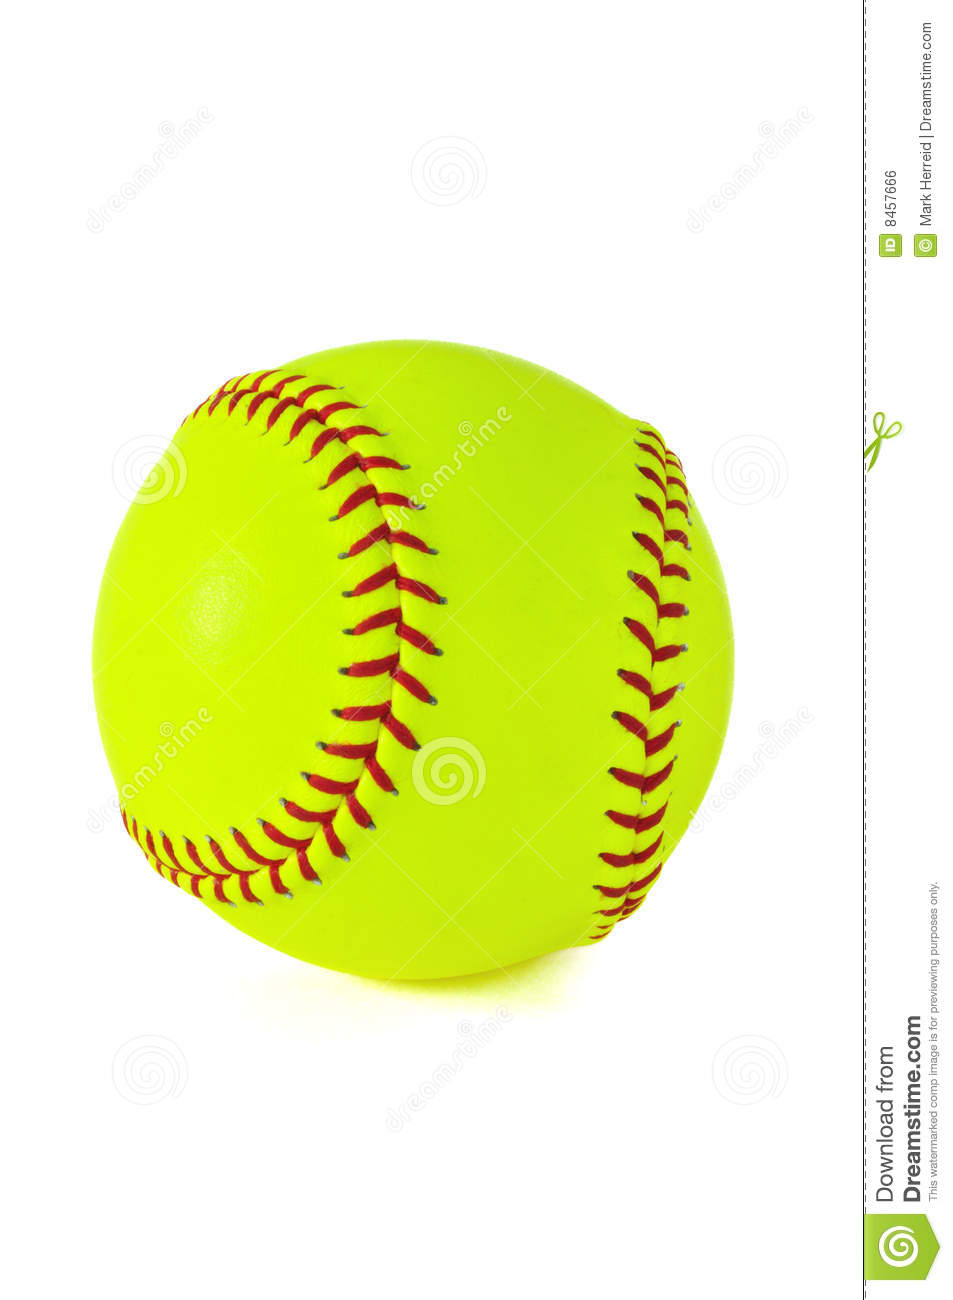 Softball giallo